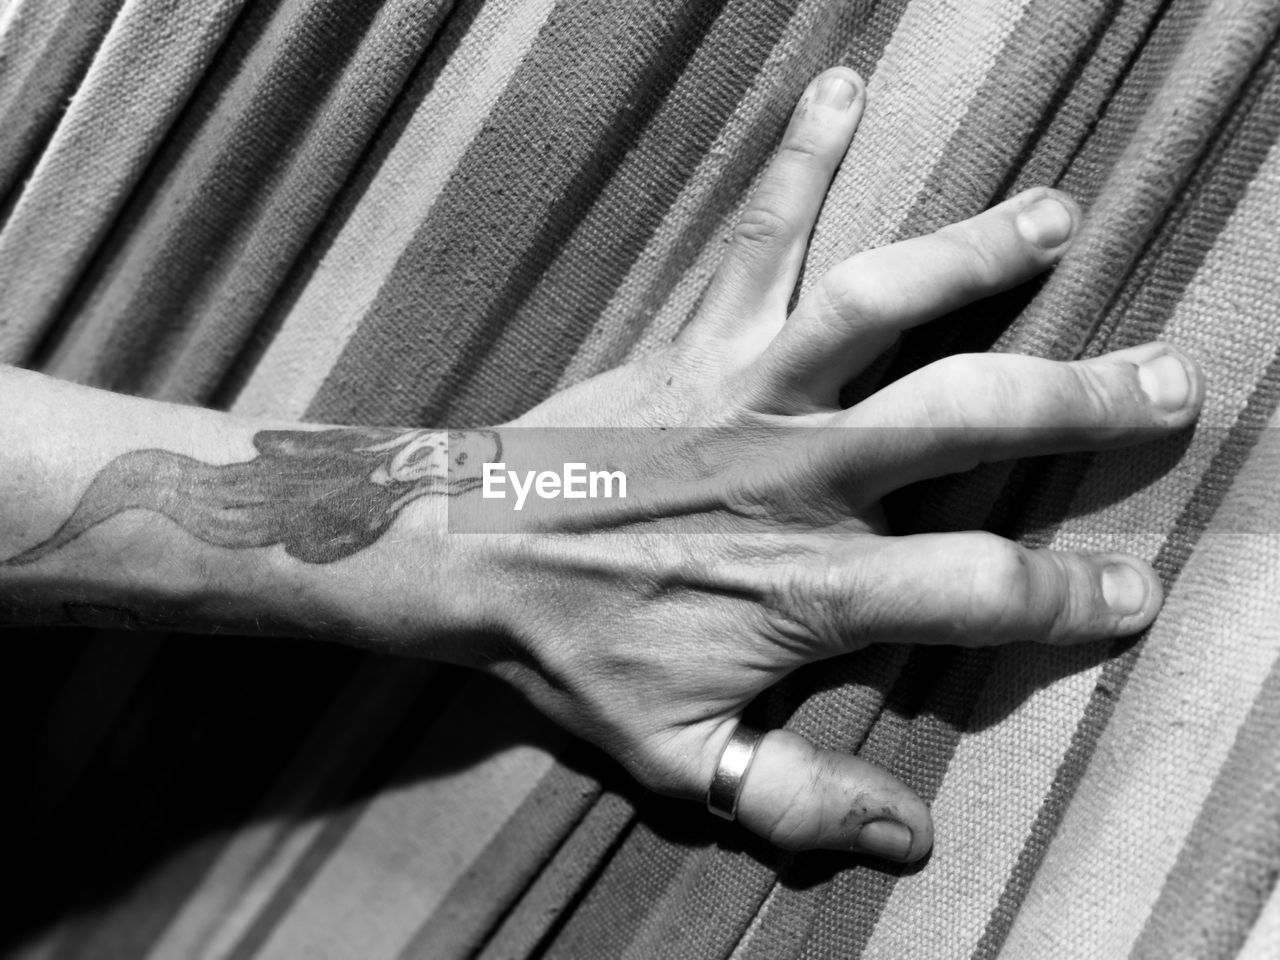 Cropped hand of person with tattoo on bed